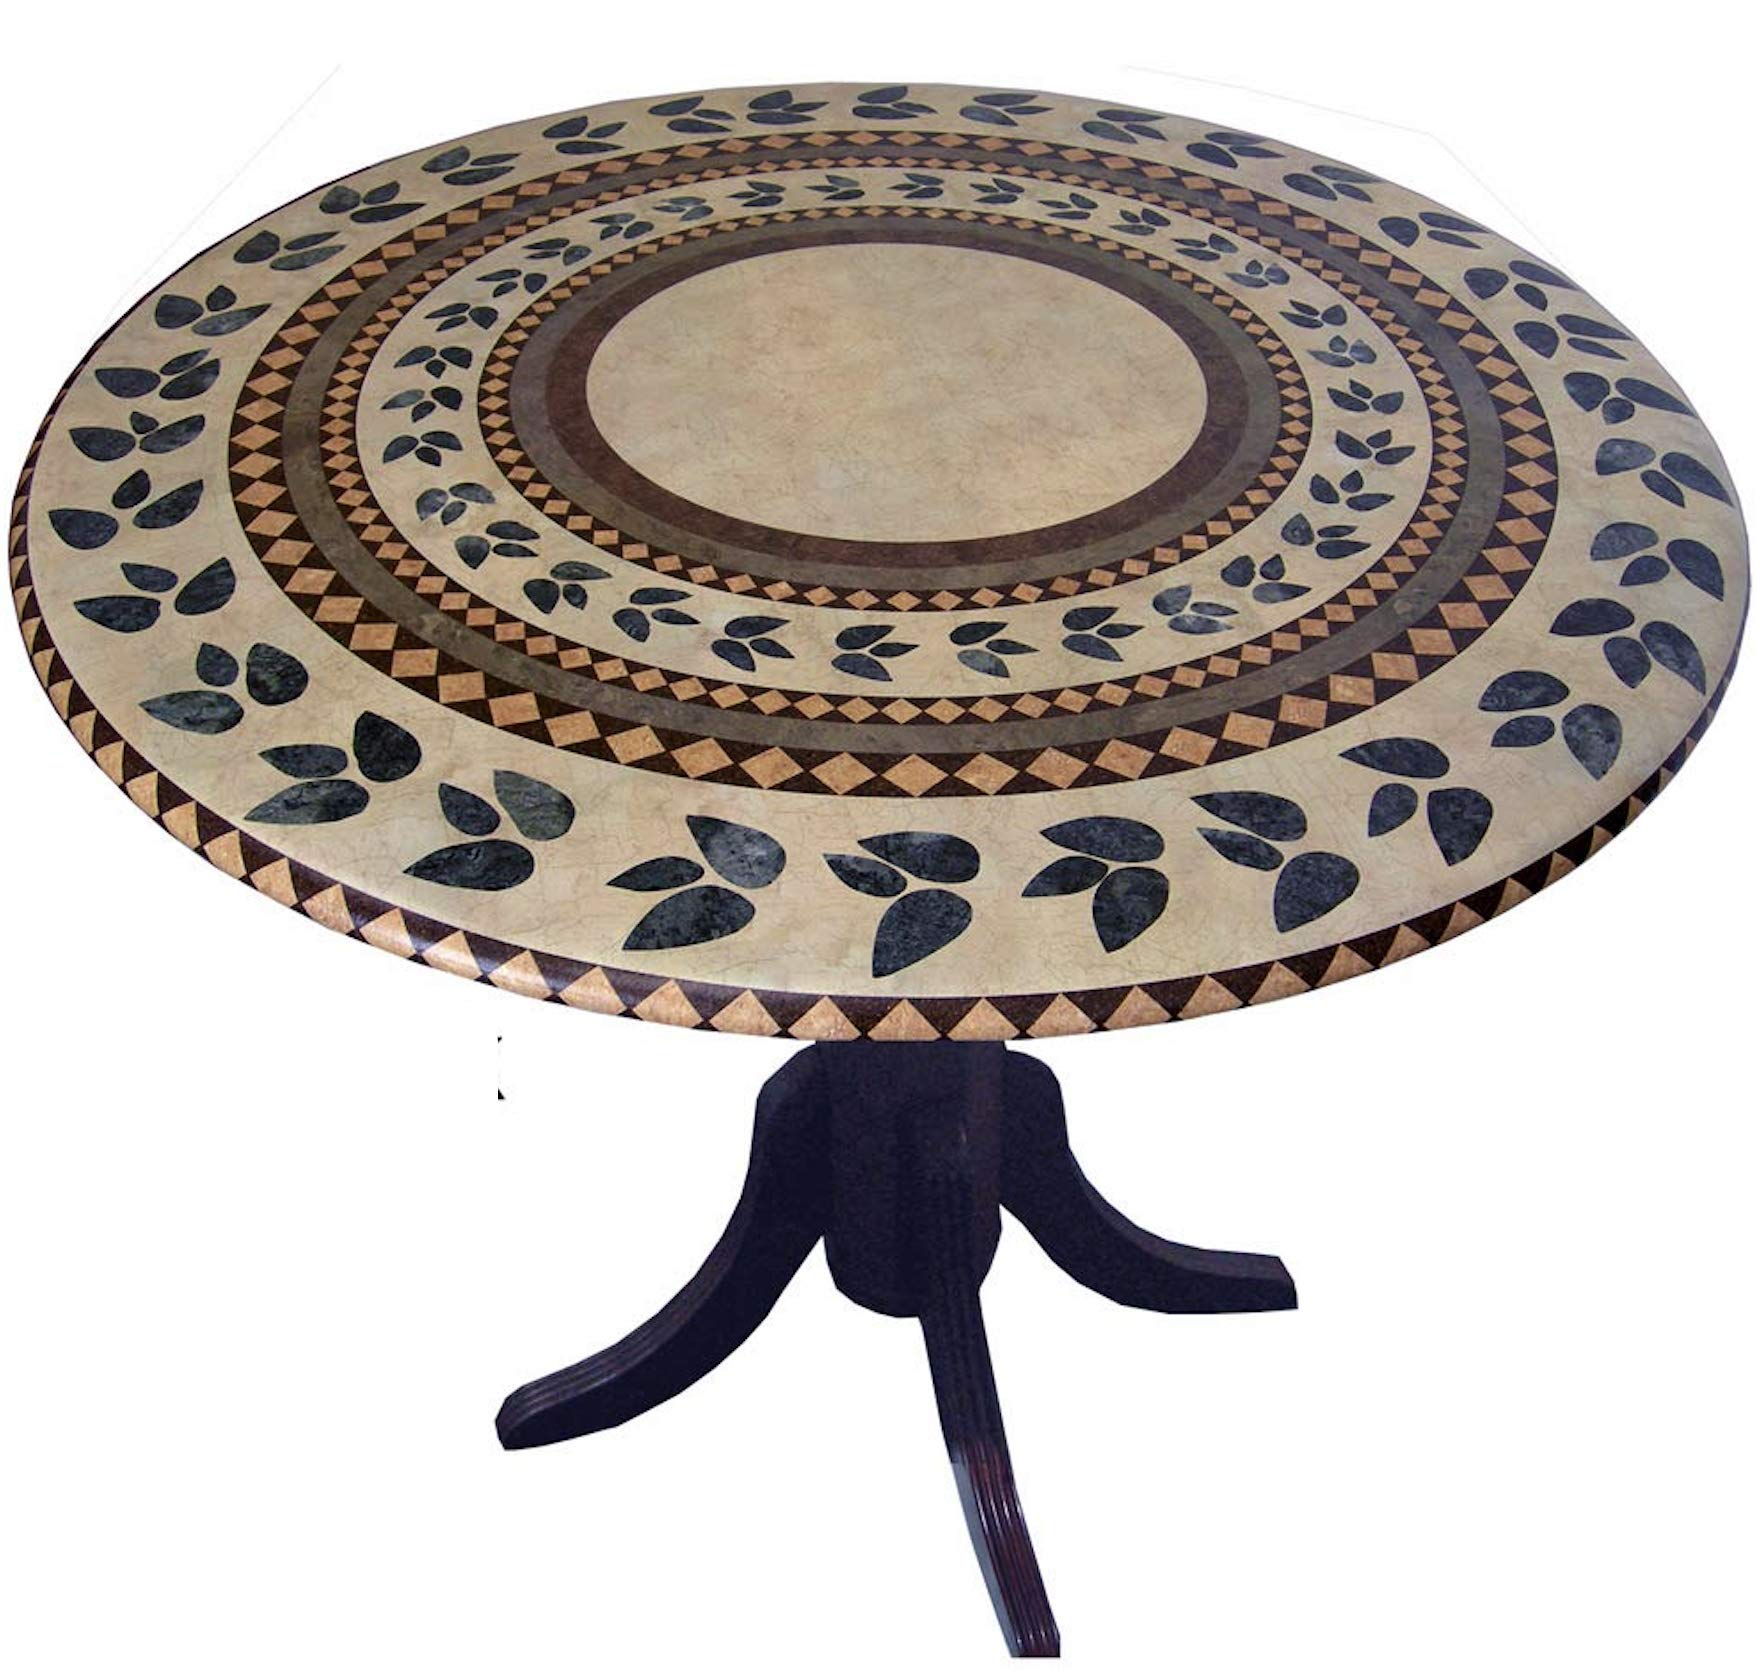 Mosaic Table Cloth Round 36 Inch To 48 Inch Elastic Edge Fitted Vinyl Table Cover Inlaid Atlantis Pattern Brown Tan Green by Table Magic